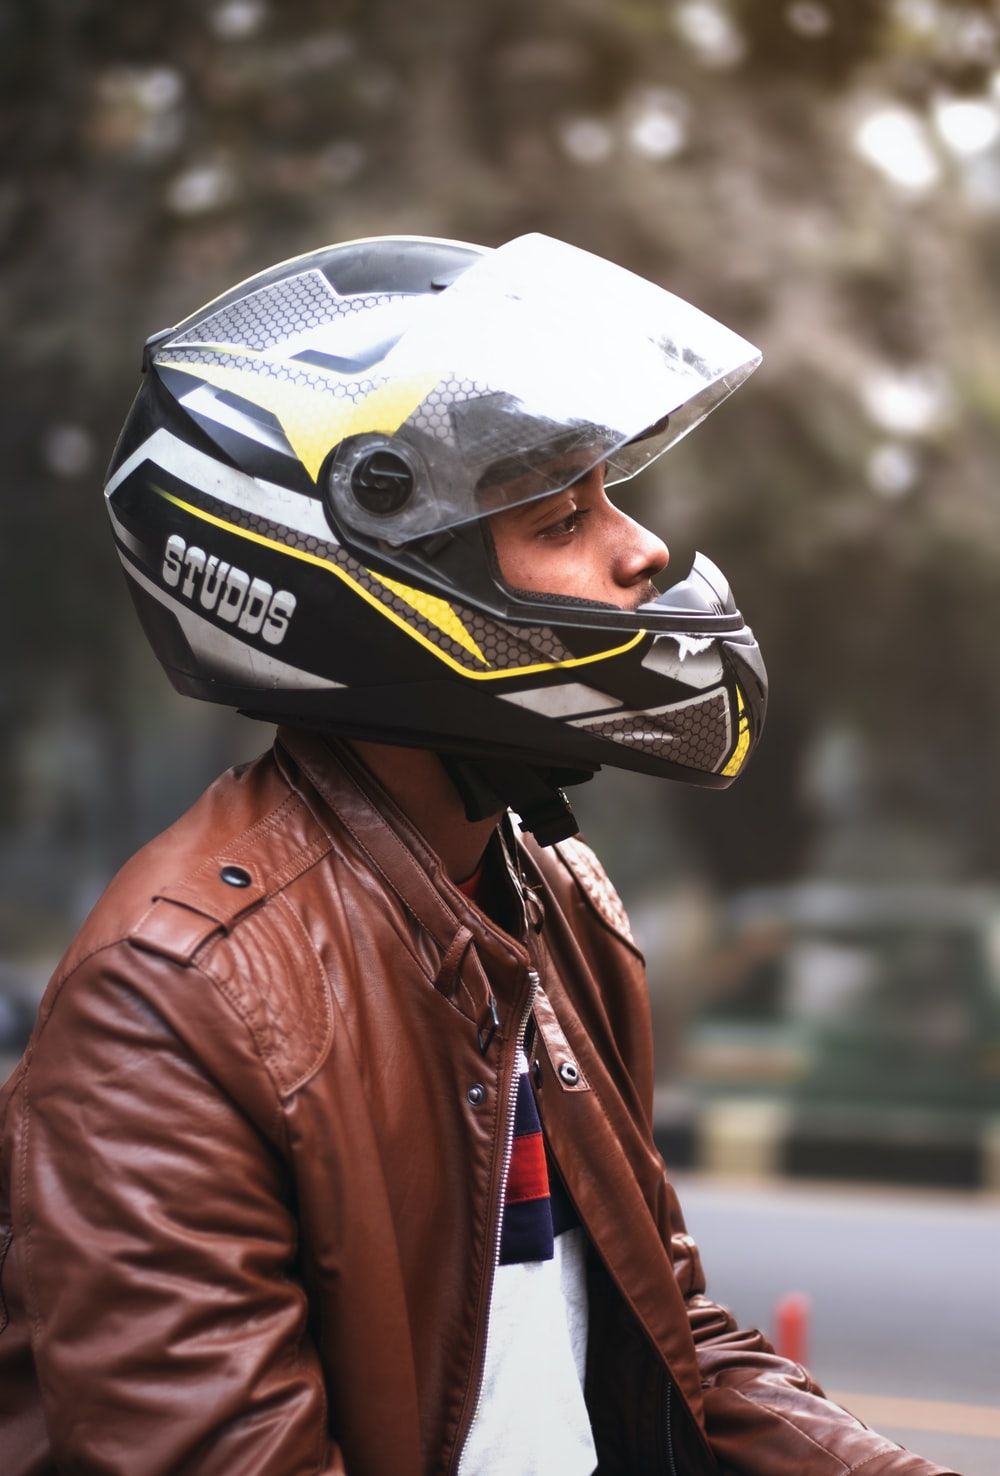 man wearing brown zip-up jacket and black full-face helmet